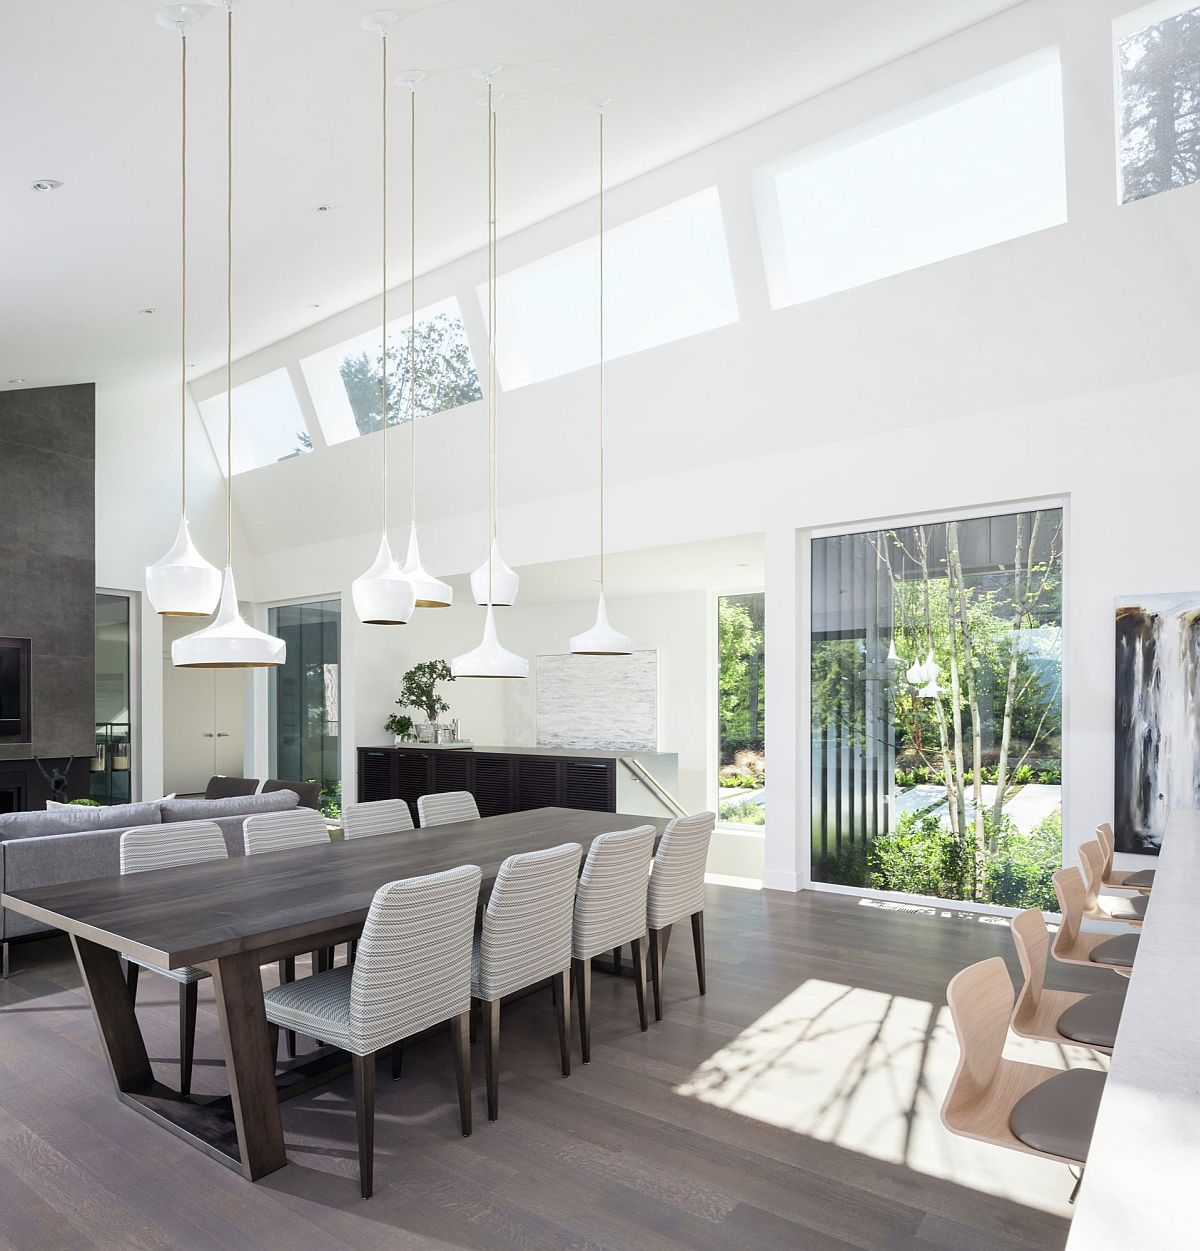 Tom Dixon pendant lights in white for the large dining space with high ceiling